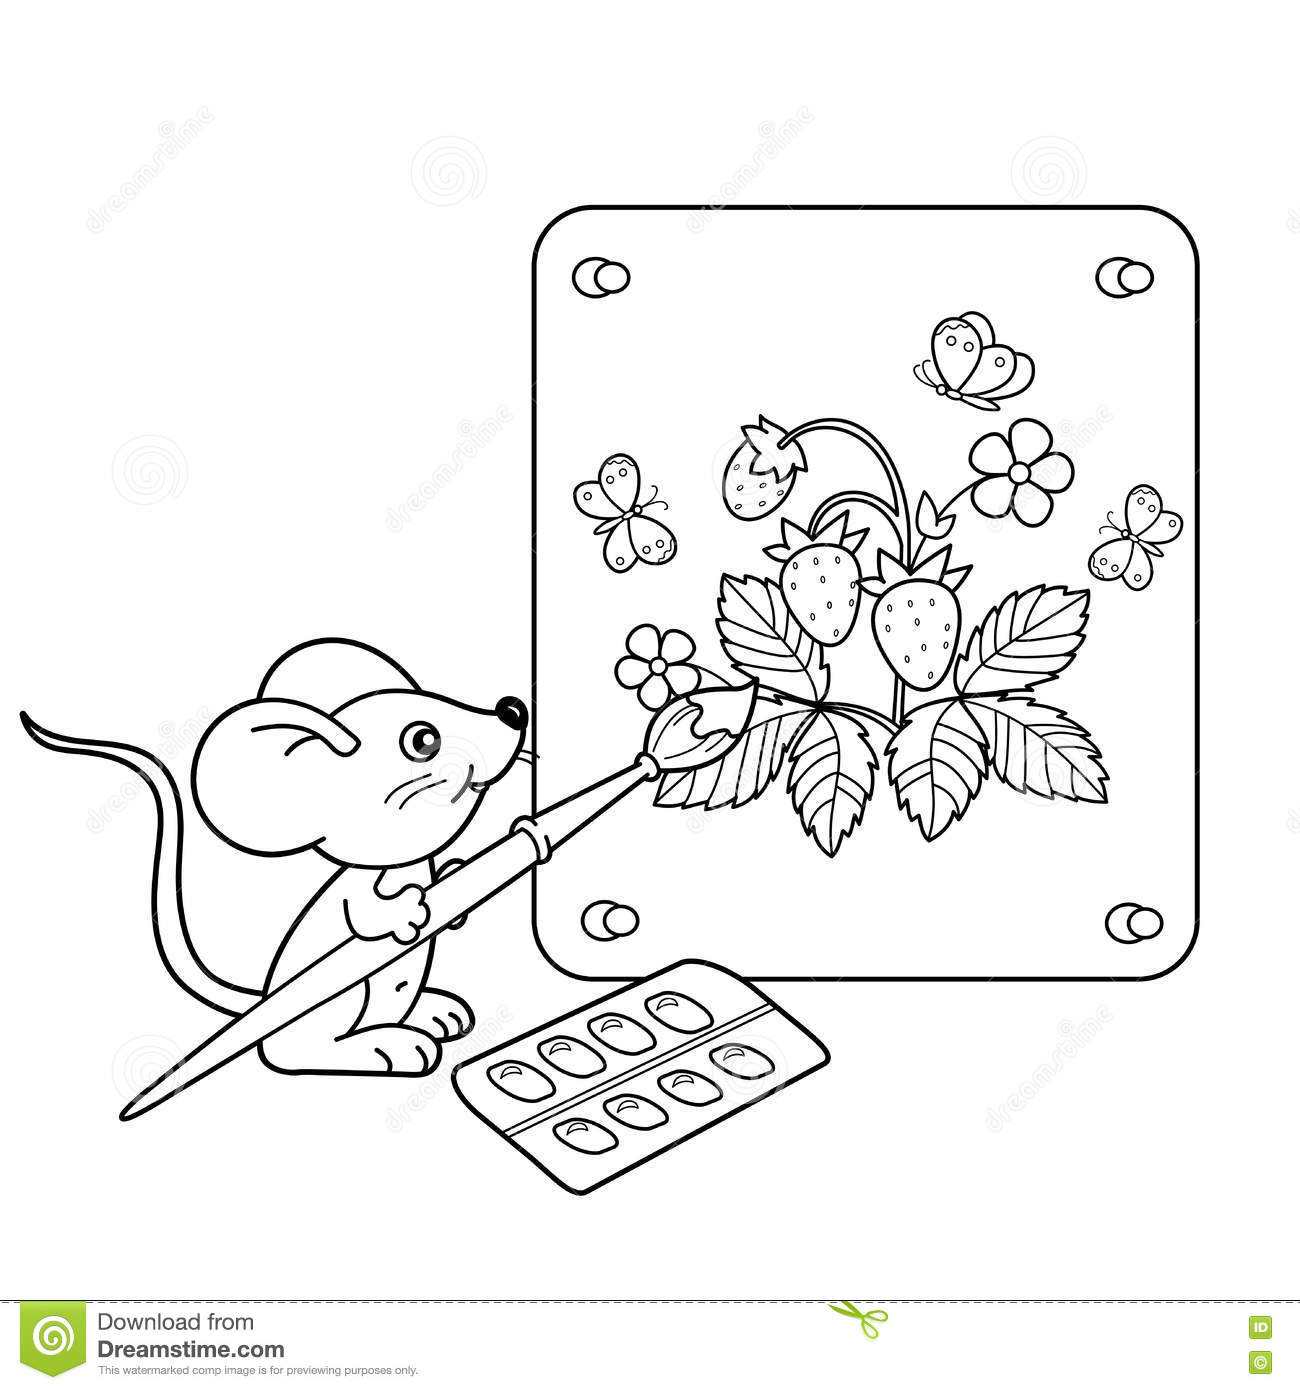 Coloring Page Outline Of cartoon little mouse with picture of strawberry with brush and paints. Coloring book for kids